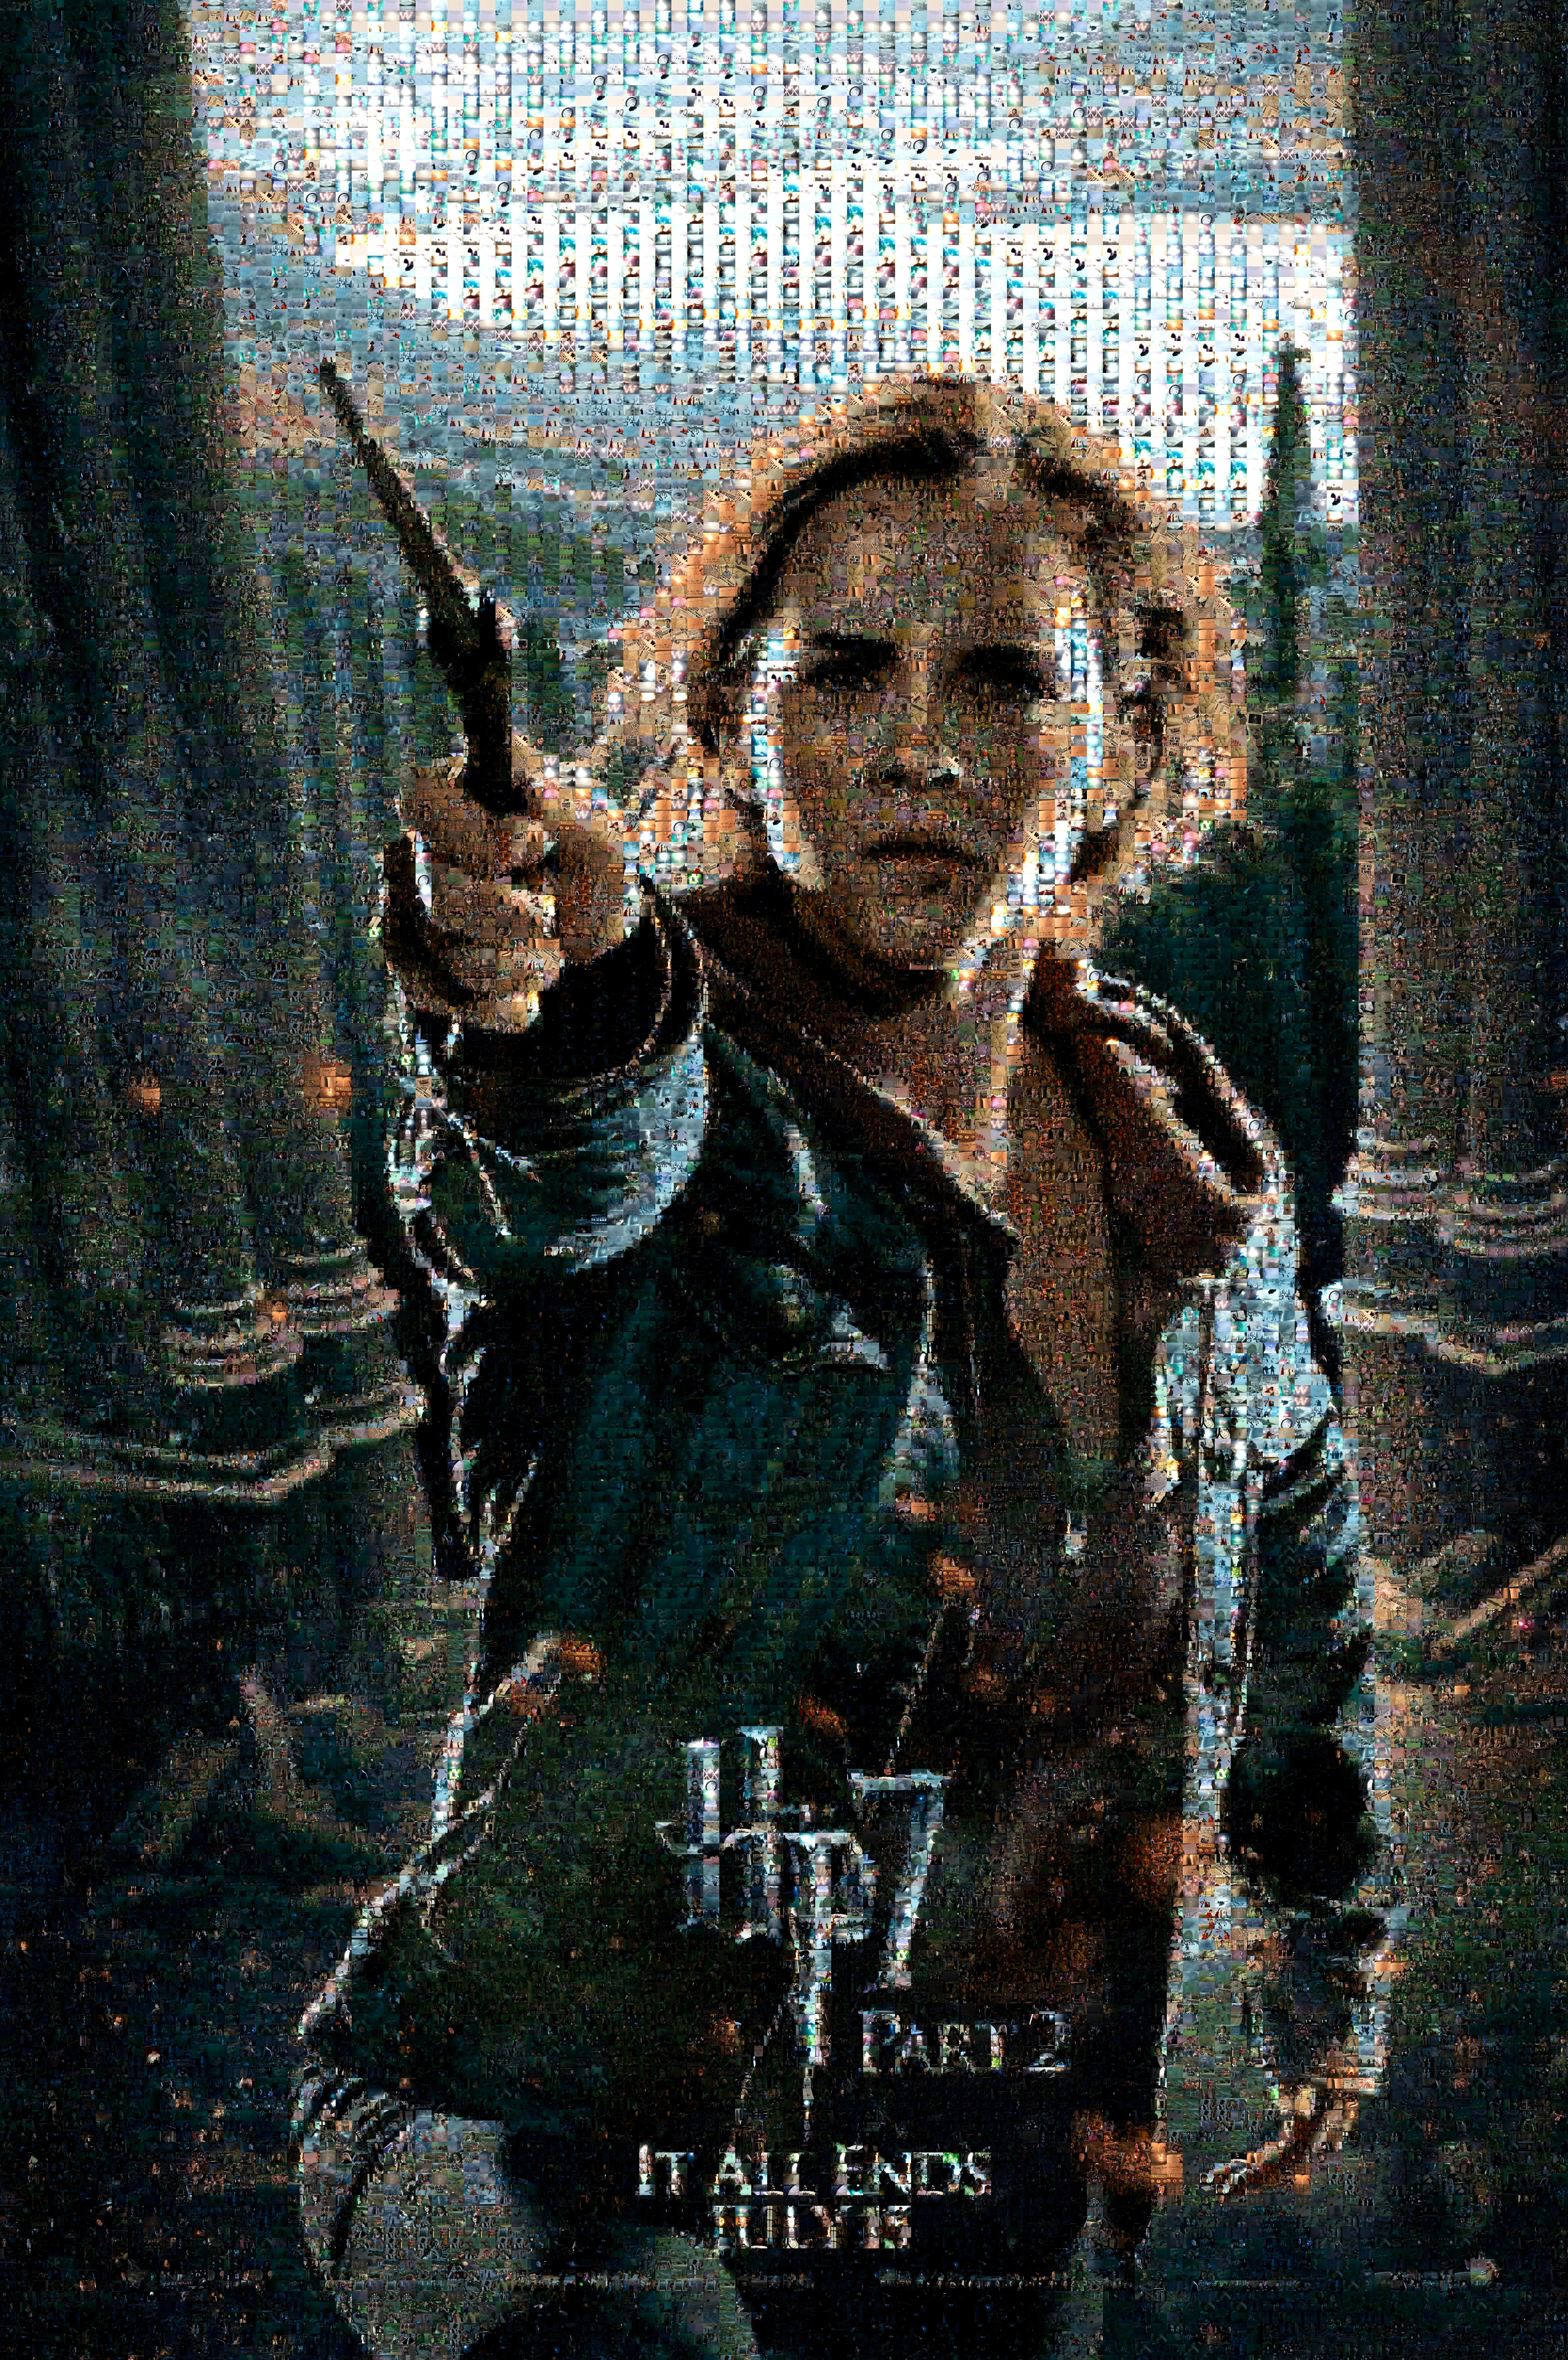 HP7 Hermione Mosaic Poster